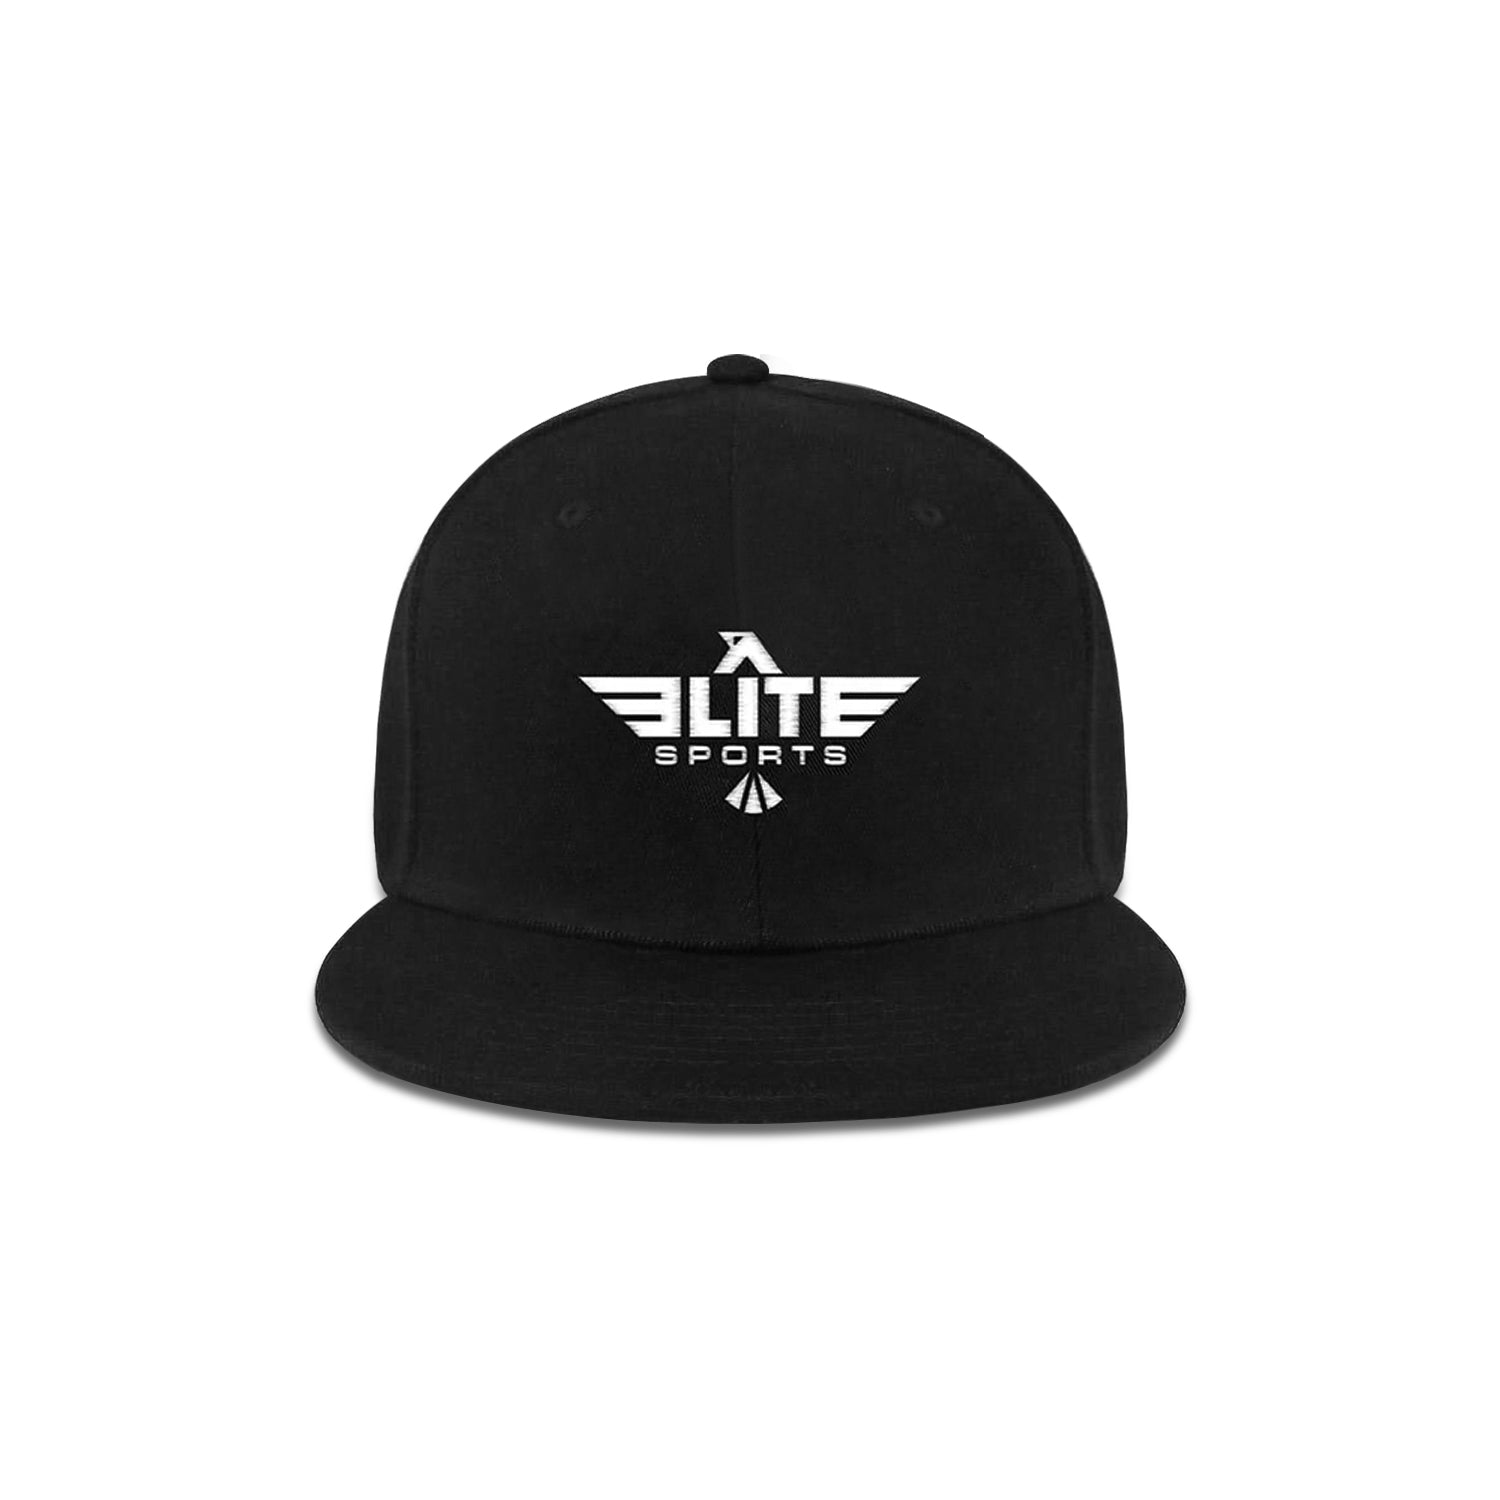 Elite Sports Snapback Black Wrestling Cap